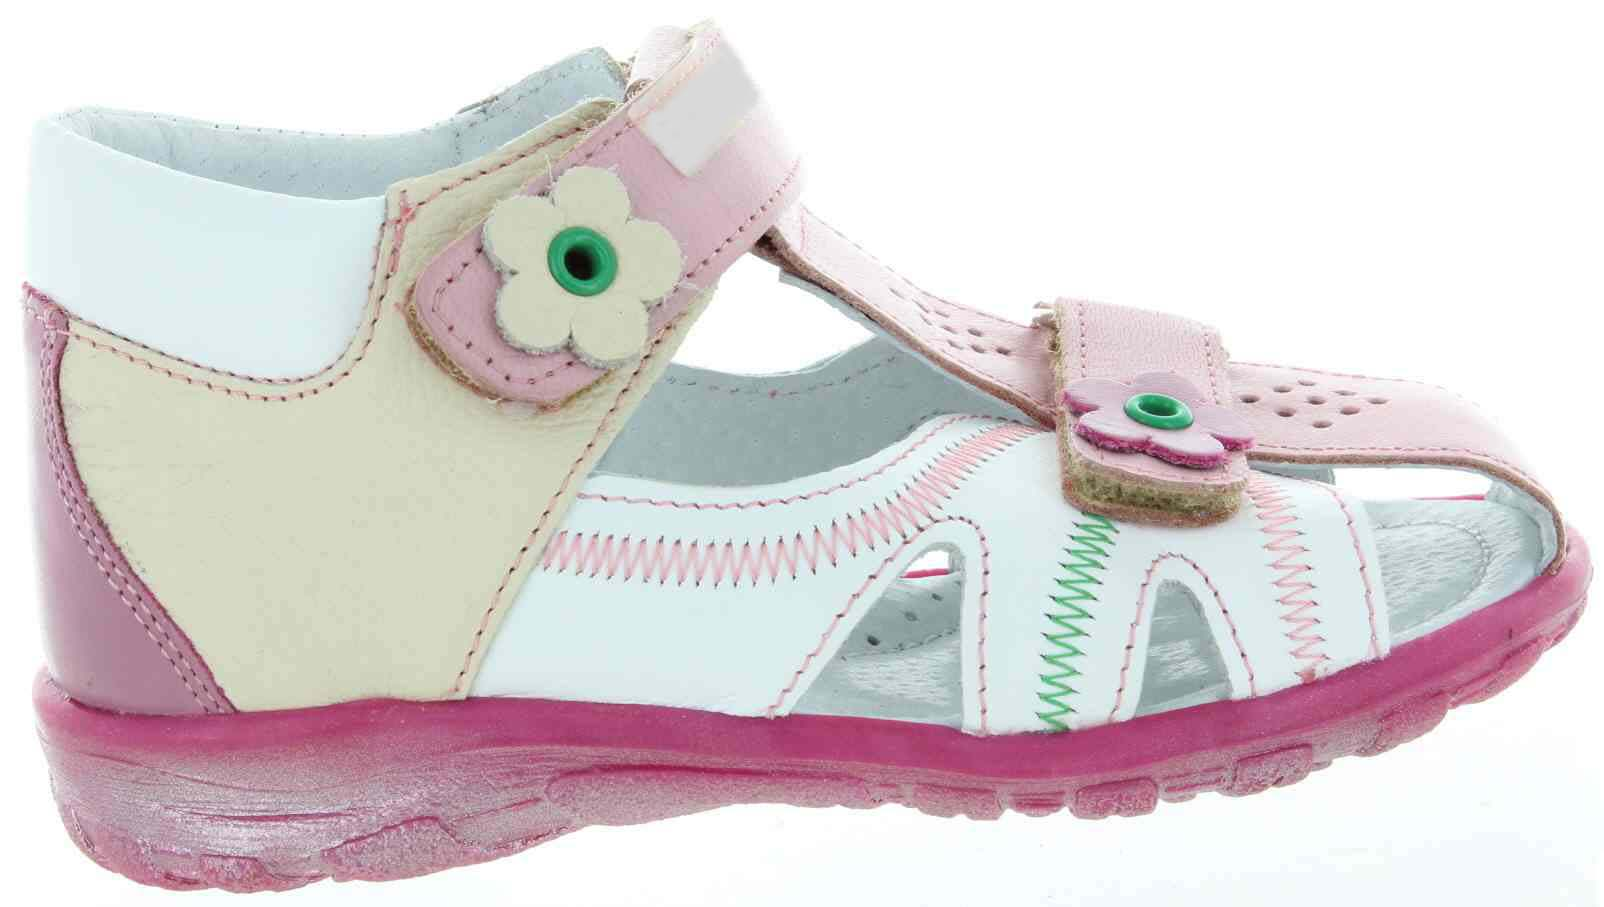 Kids sandals for flat foot support